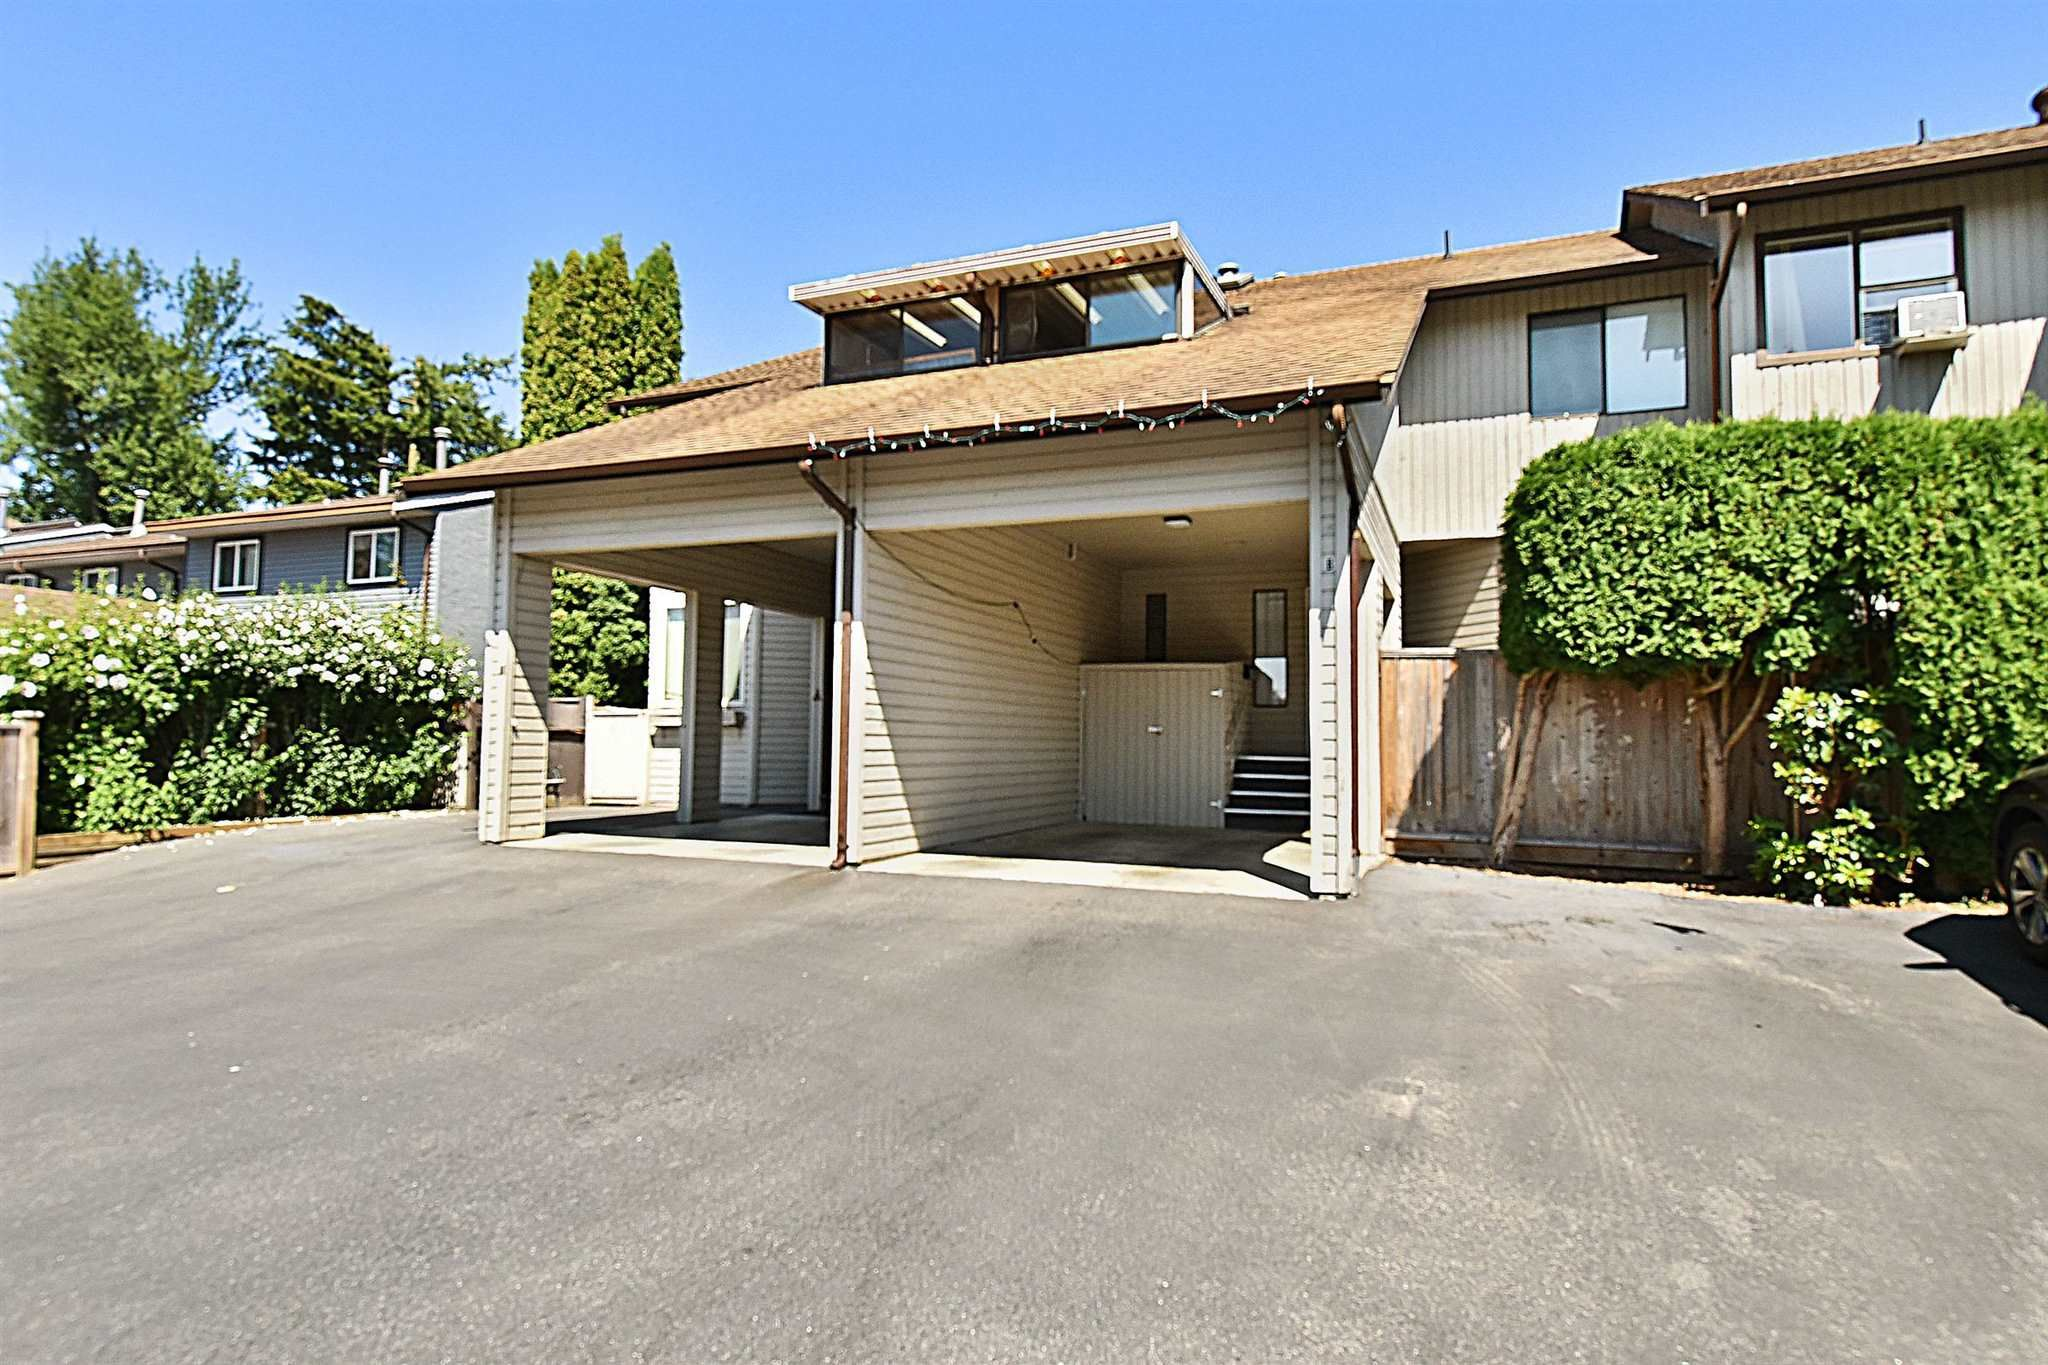 """Main Photo: B 33871 MARSHALL Road in Abbotsford: Central Abbotsford Townhouse for sale in """"MARSHALL HEIGHTS"""" : MLS®# R2605692"""